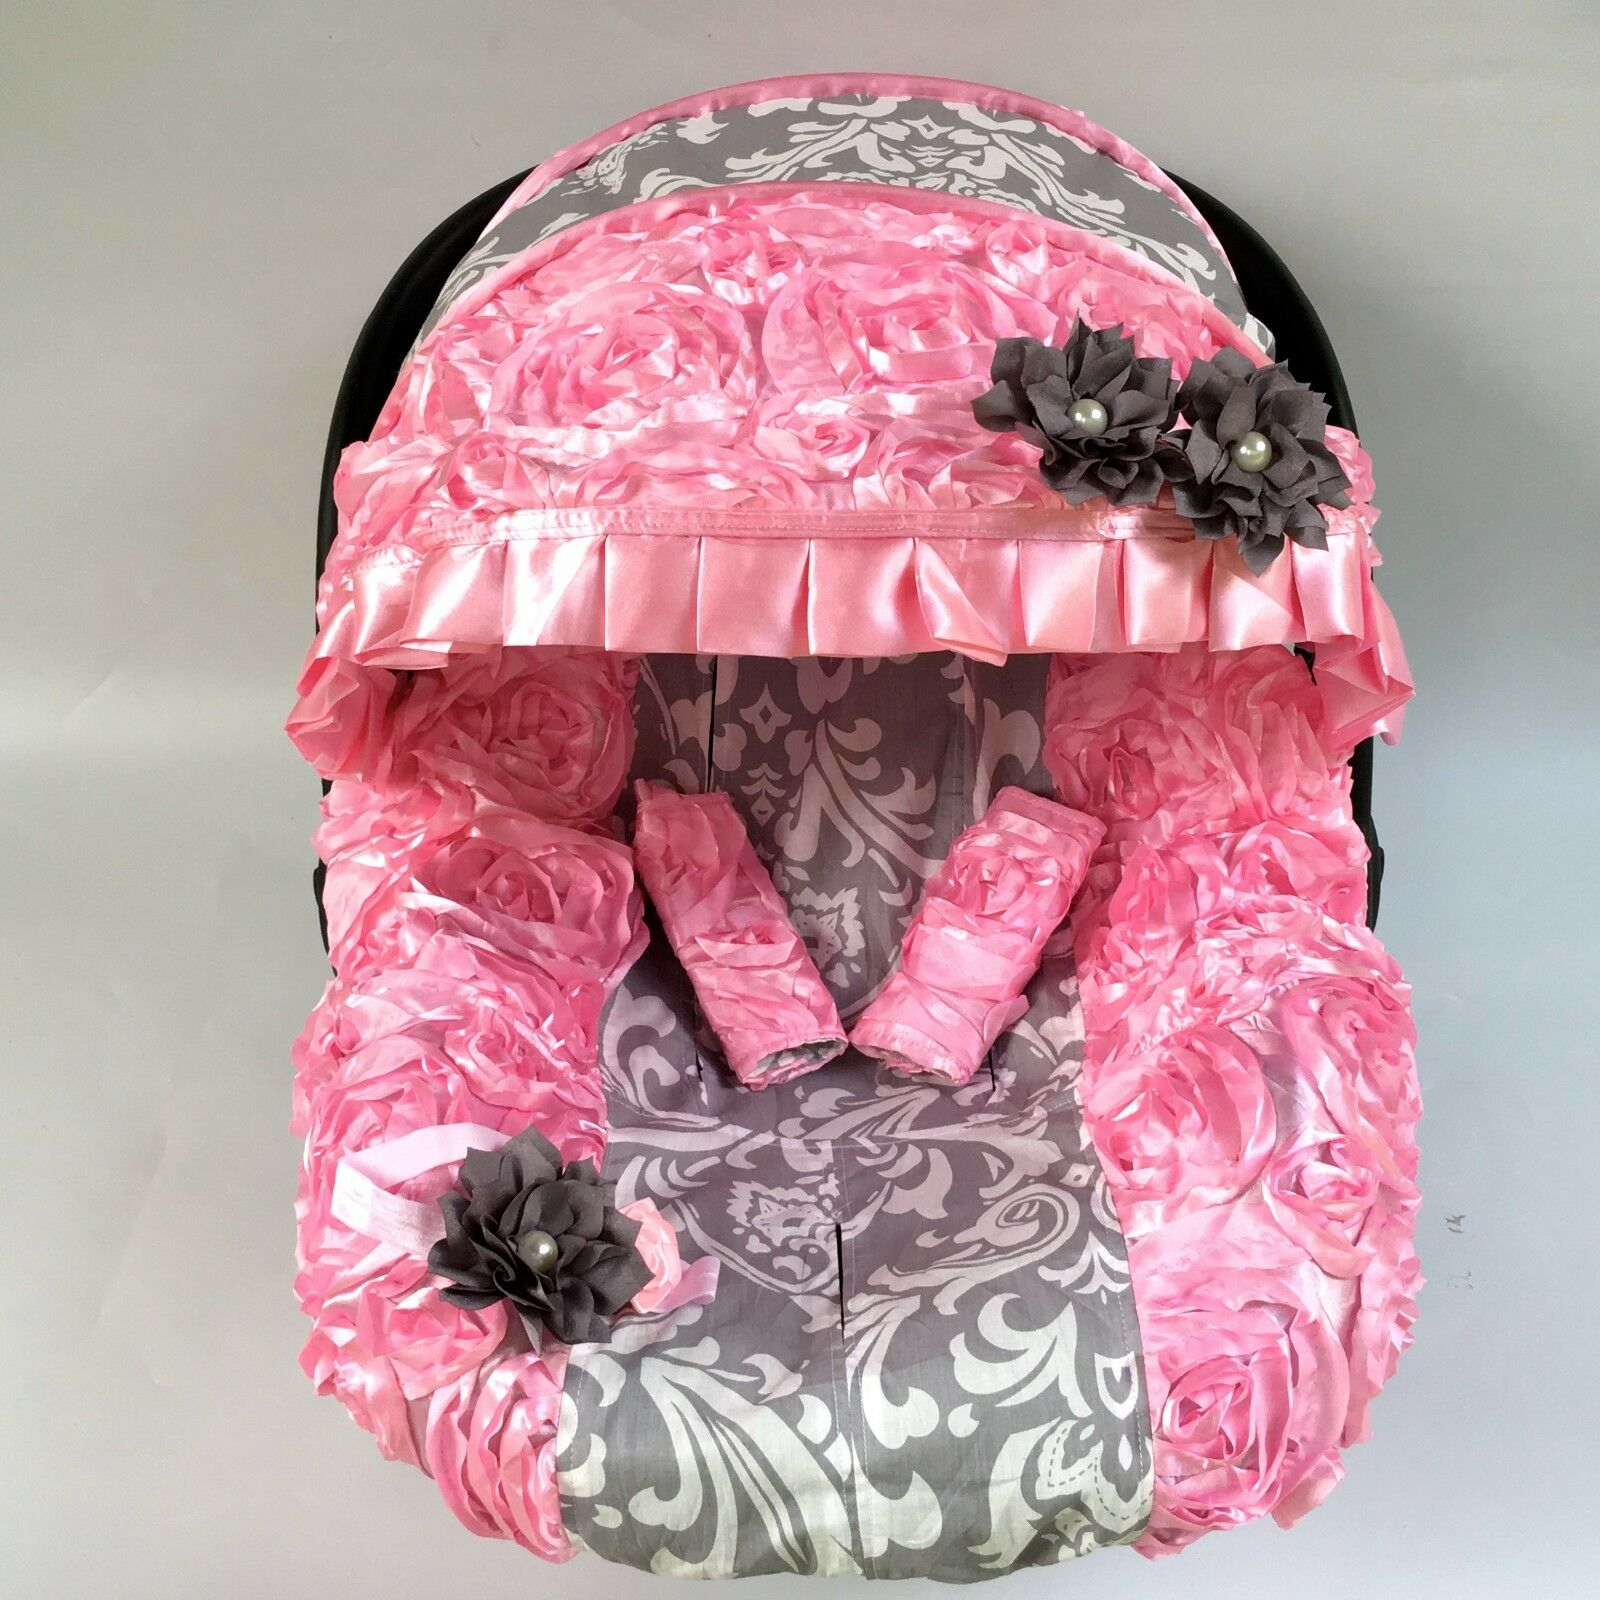 Washing Car Seat Cover Graco